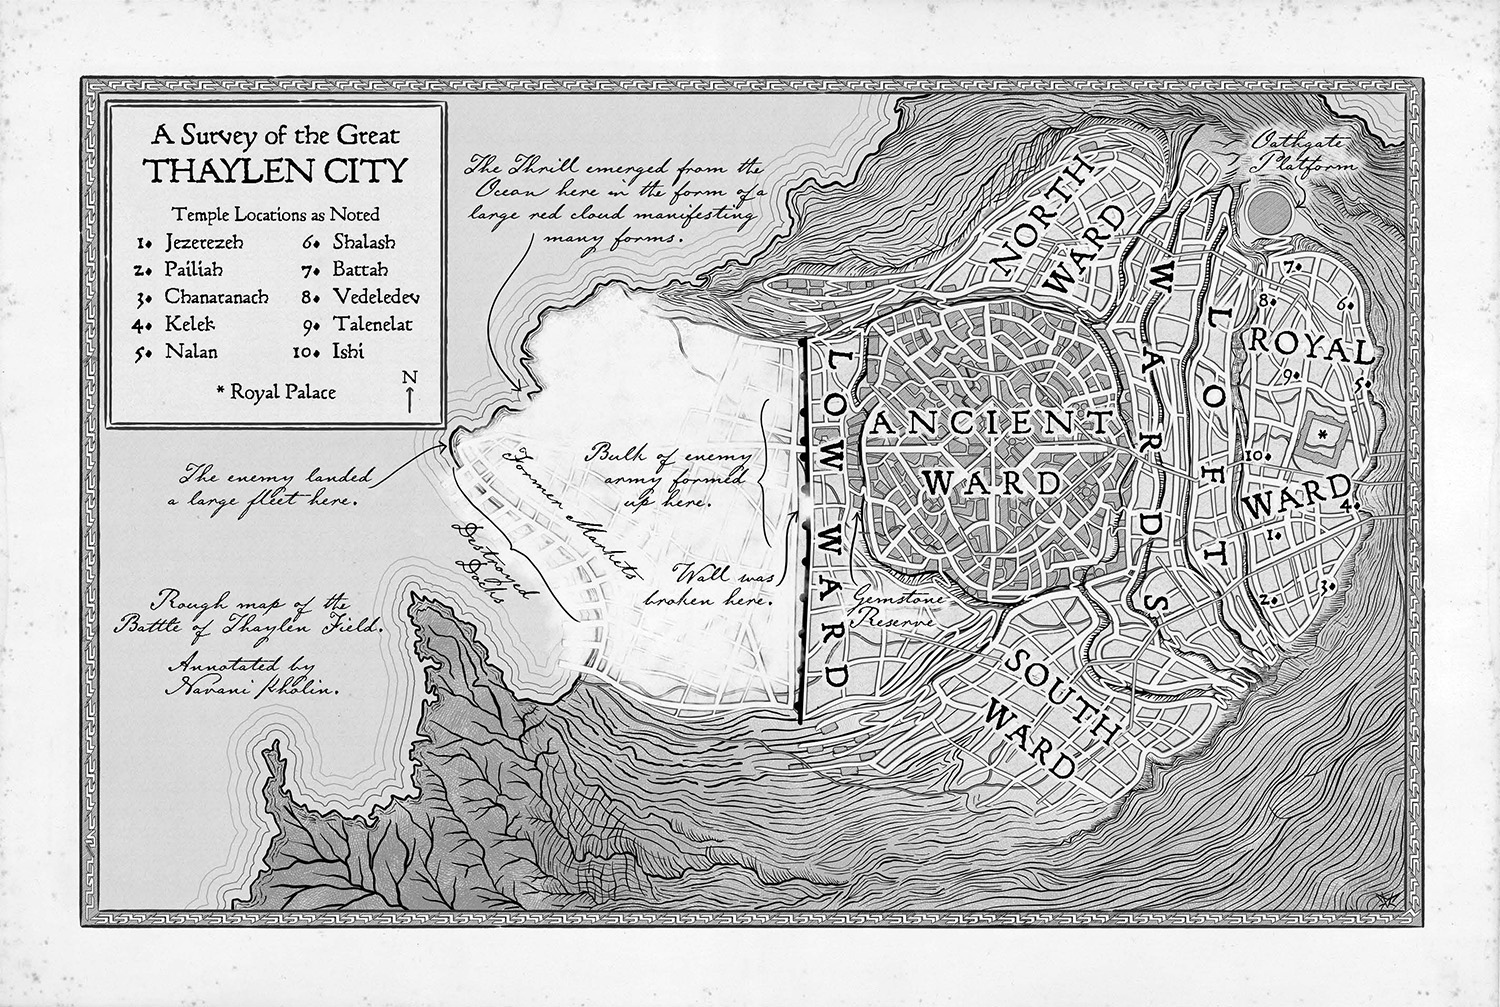 Interior artwork from Oathbringer; map of Thaylen City